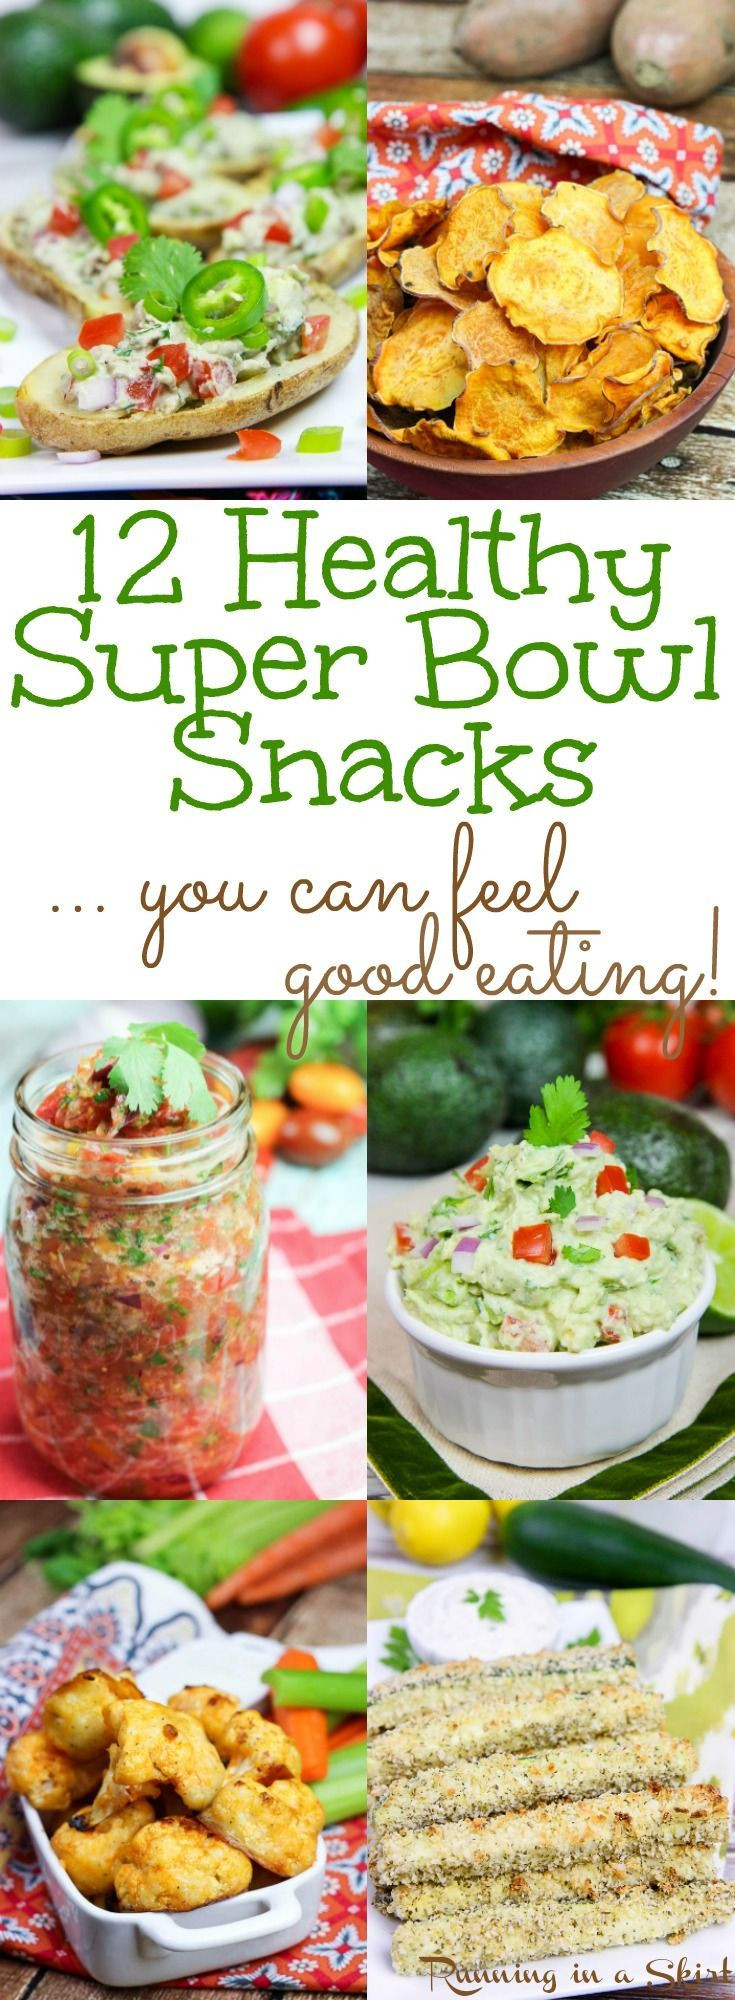 Super Healthy Vegetarian Recipes  12 Ve arian & Healthy Super Bowl Snacks